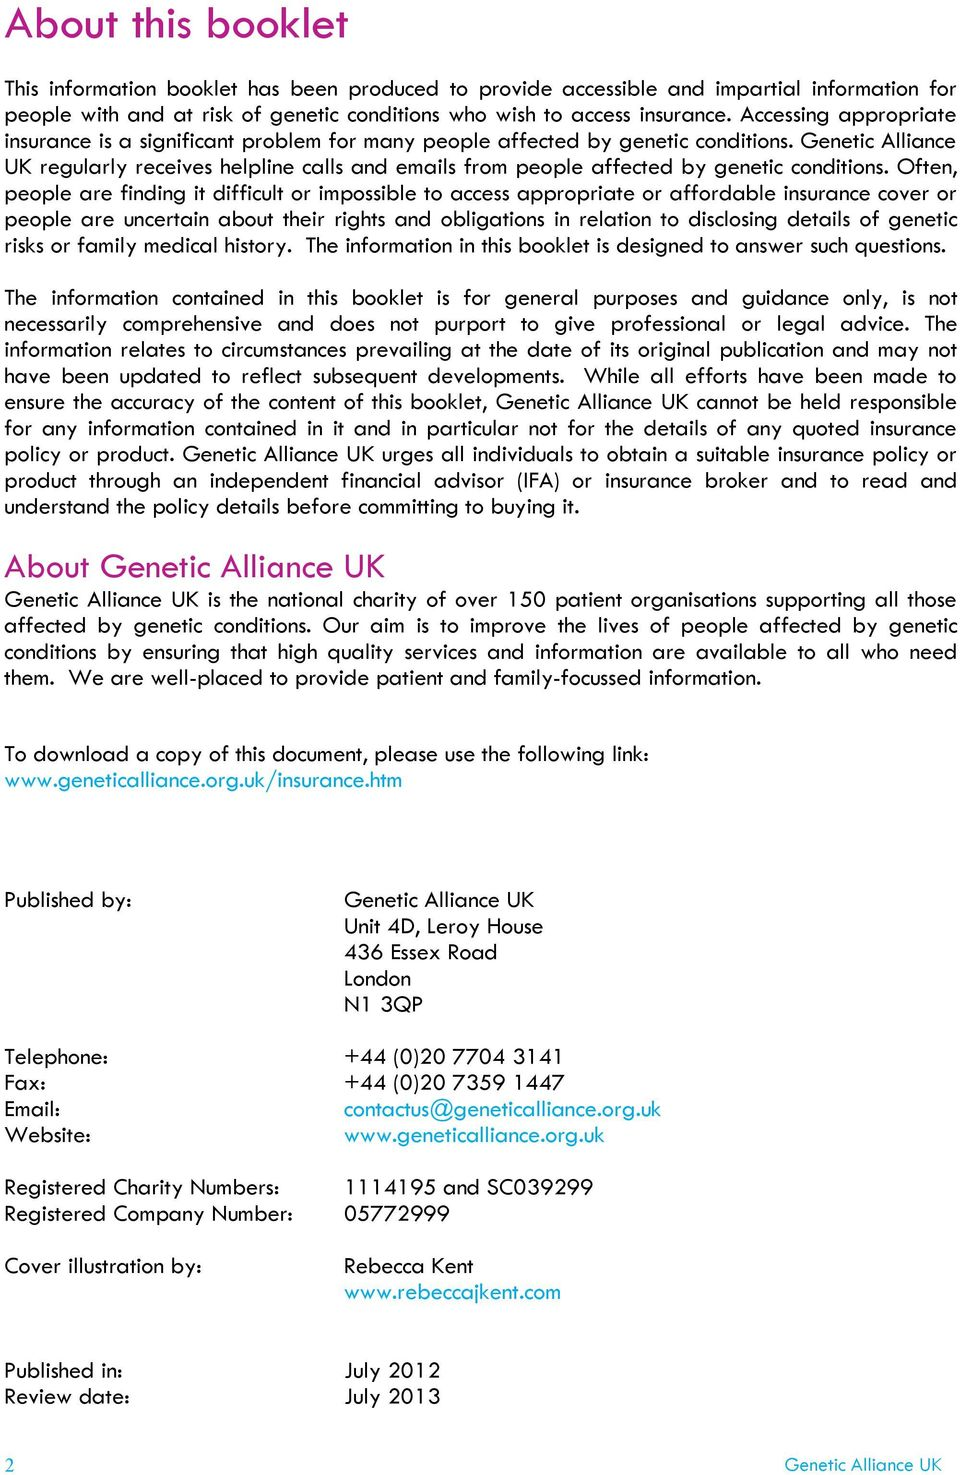 Genetic Alliance UK regularly receives helpline calls and emails from people affected by genetic conditions.